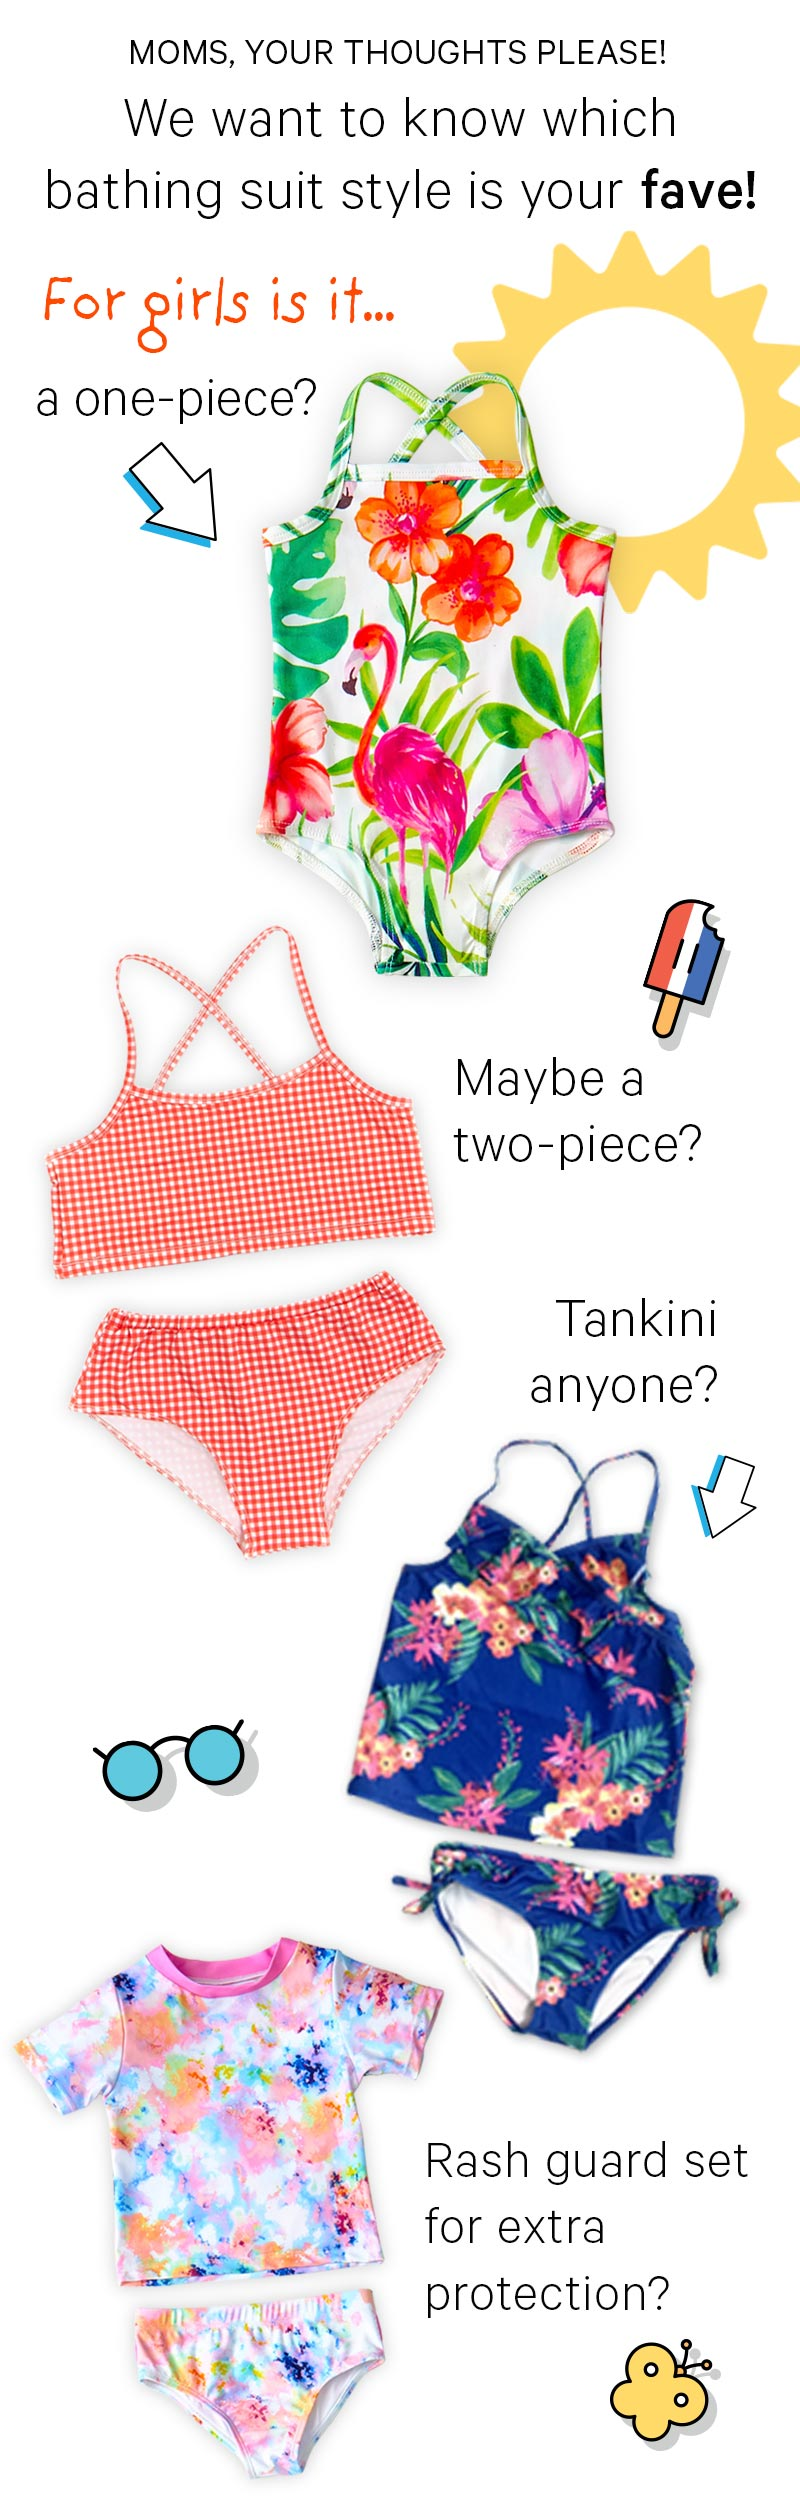 Moms, we want to know which bathing suite style is your fave!